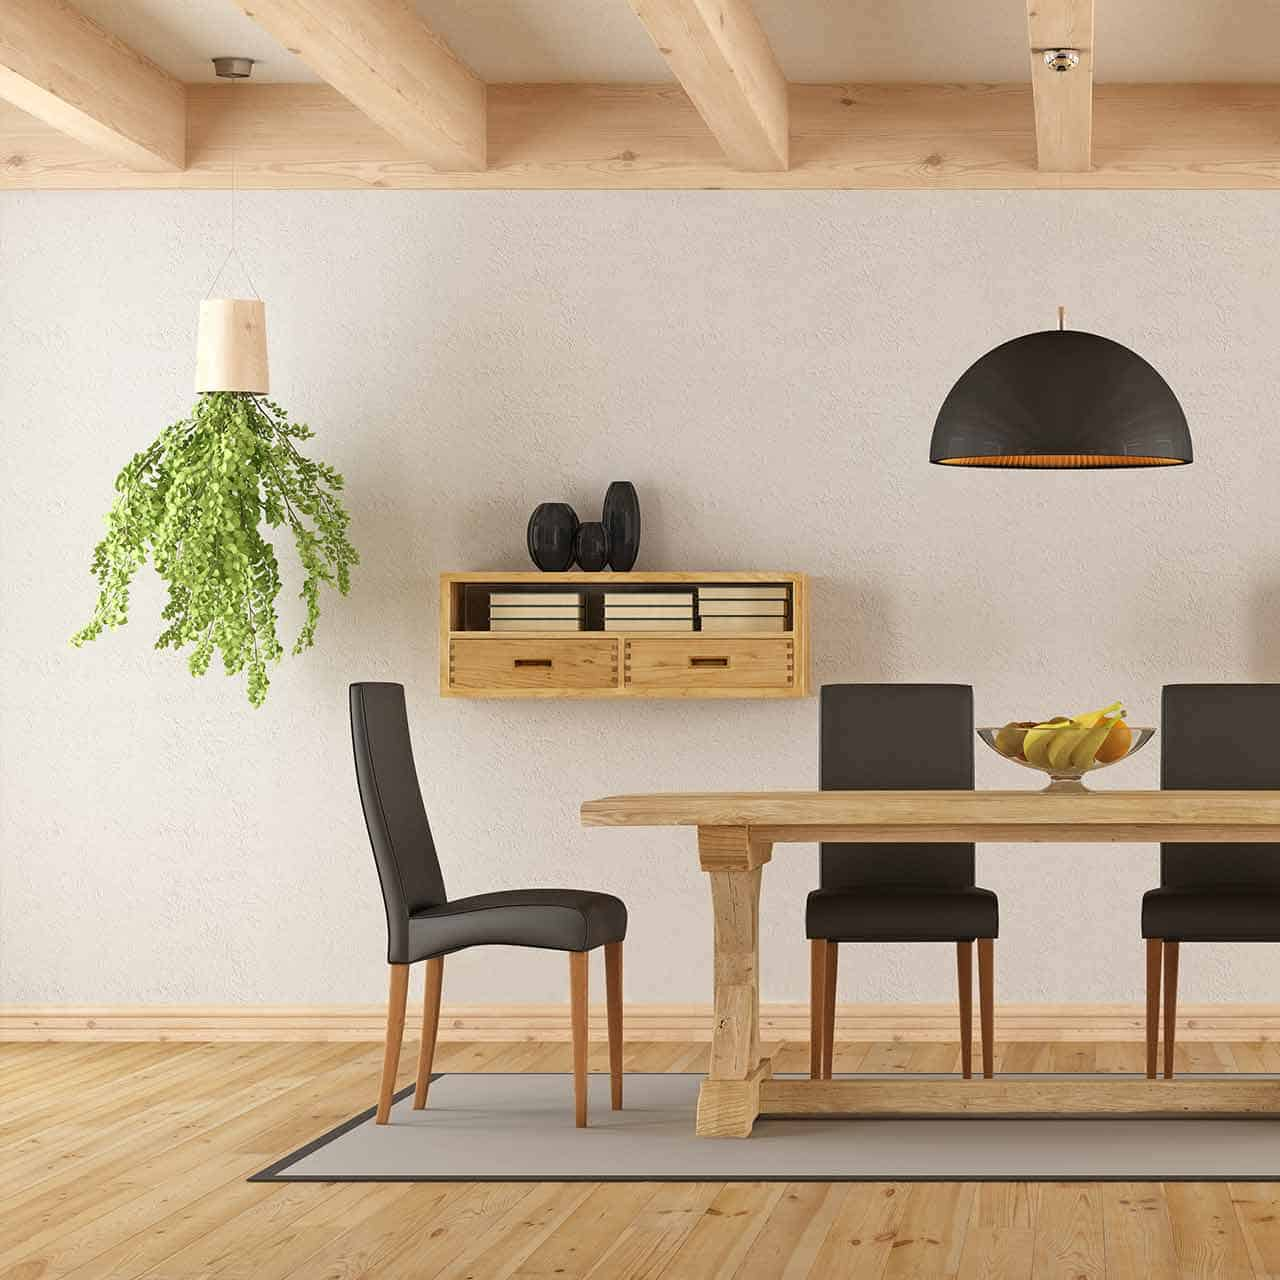 Rustic style dining room to give your dining room a rustic look, the tableware you choose is crucial for dining room style